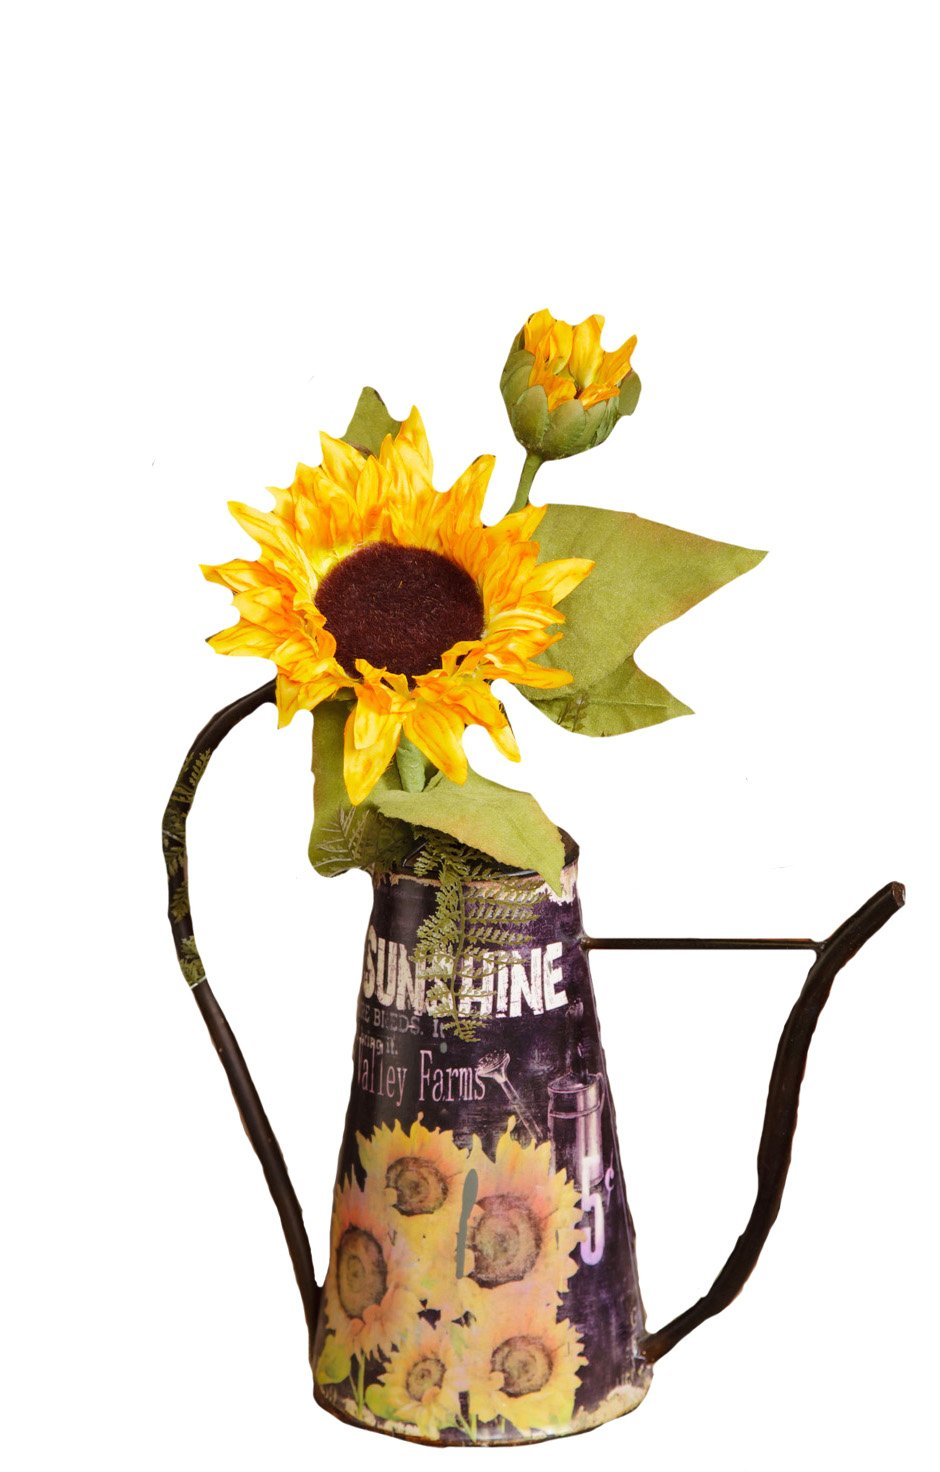 Your Heart's Delight Sunflower Watering Can, 12-3/4 by 12-1/2 by 6-Inch